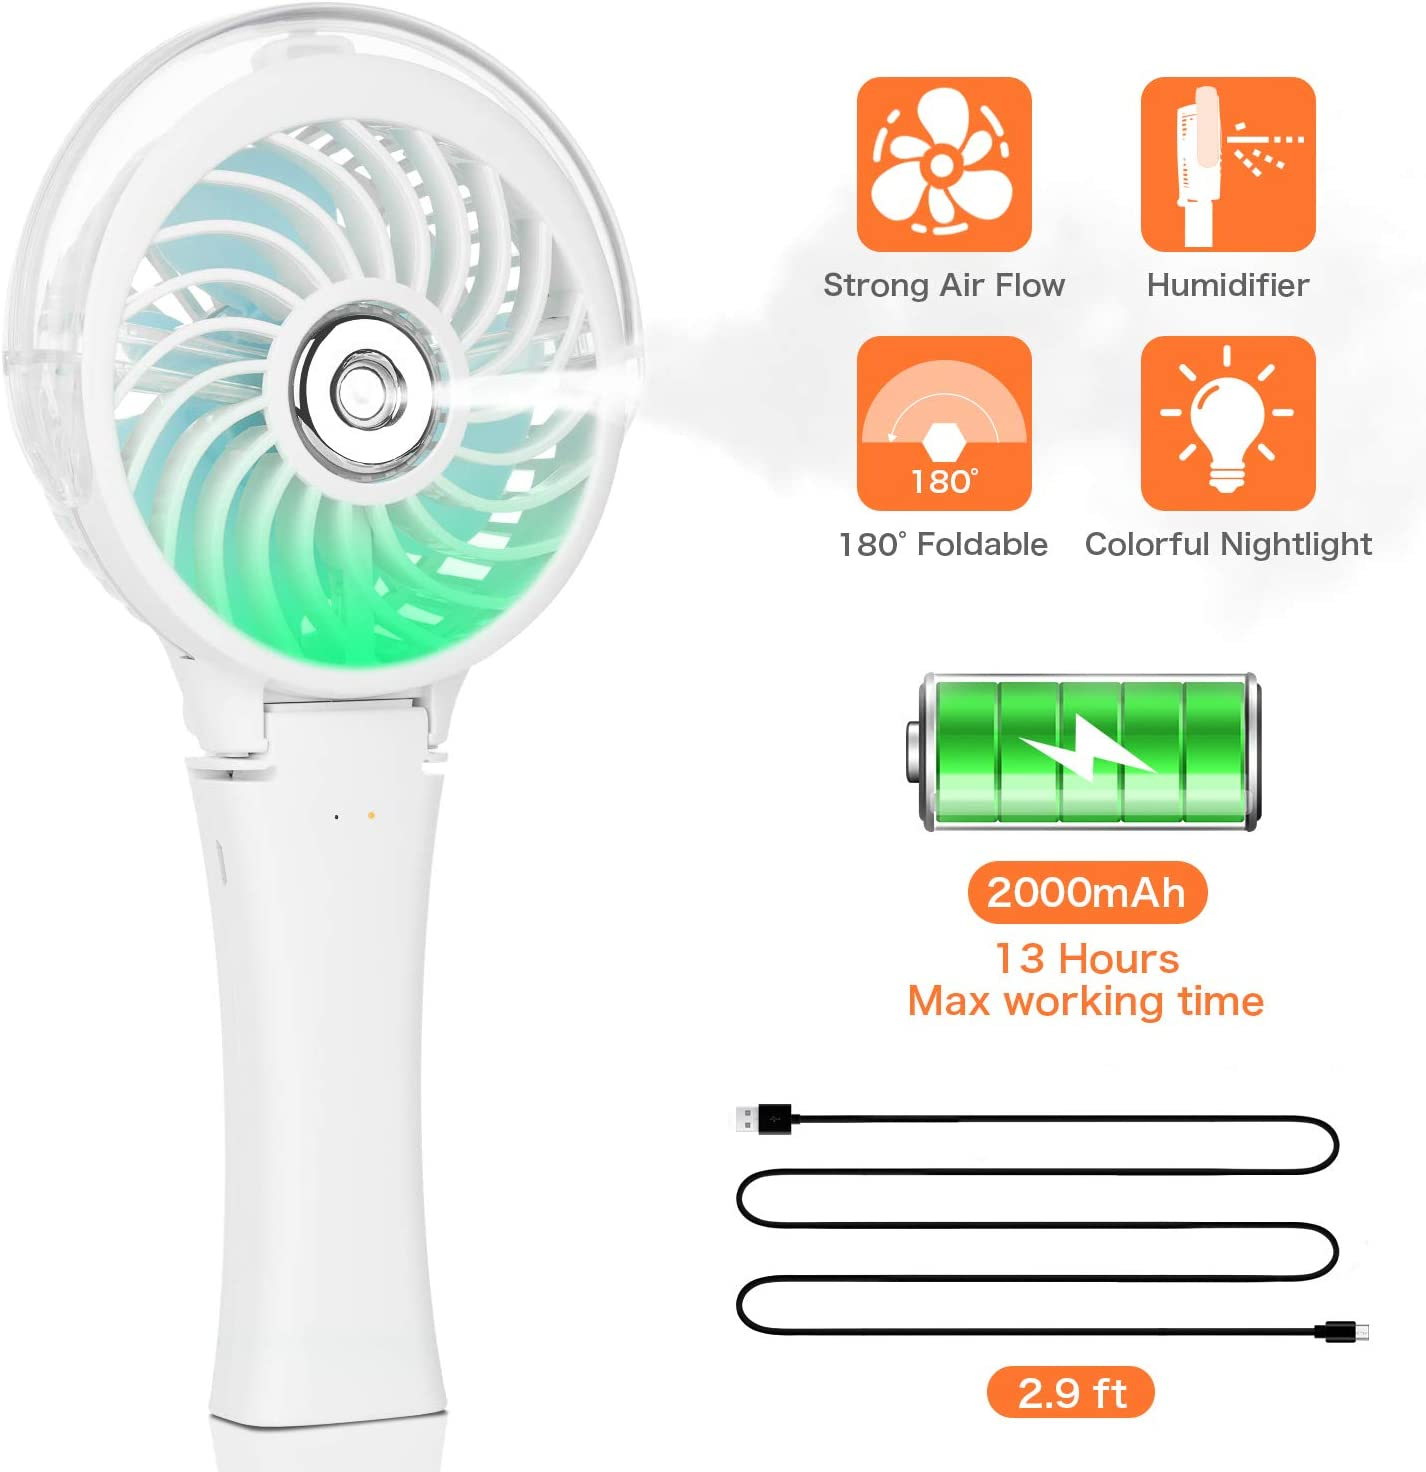 Handheld Misting Fan Portable Hand Fan-Mini Rechargeable Battery Operated Fan, Foldable Personal Travel Fan with Cooling Humidifier and Colorful Nightlight for Camping, Office, Outdoor (White)